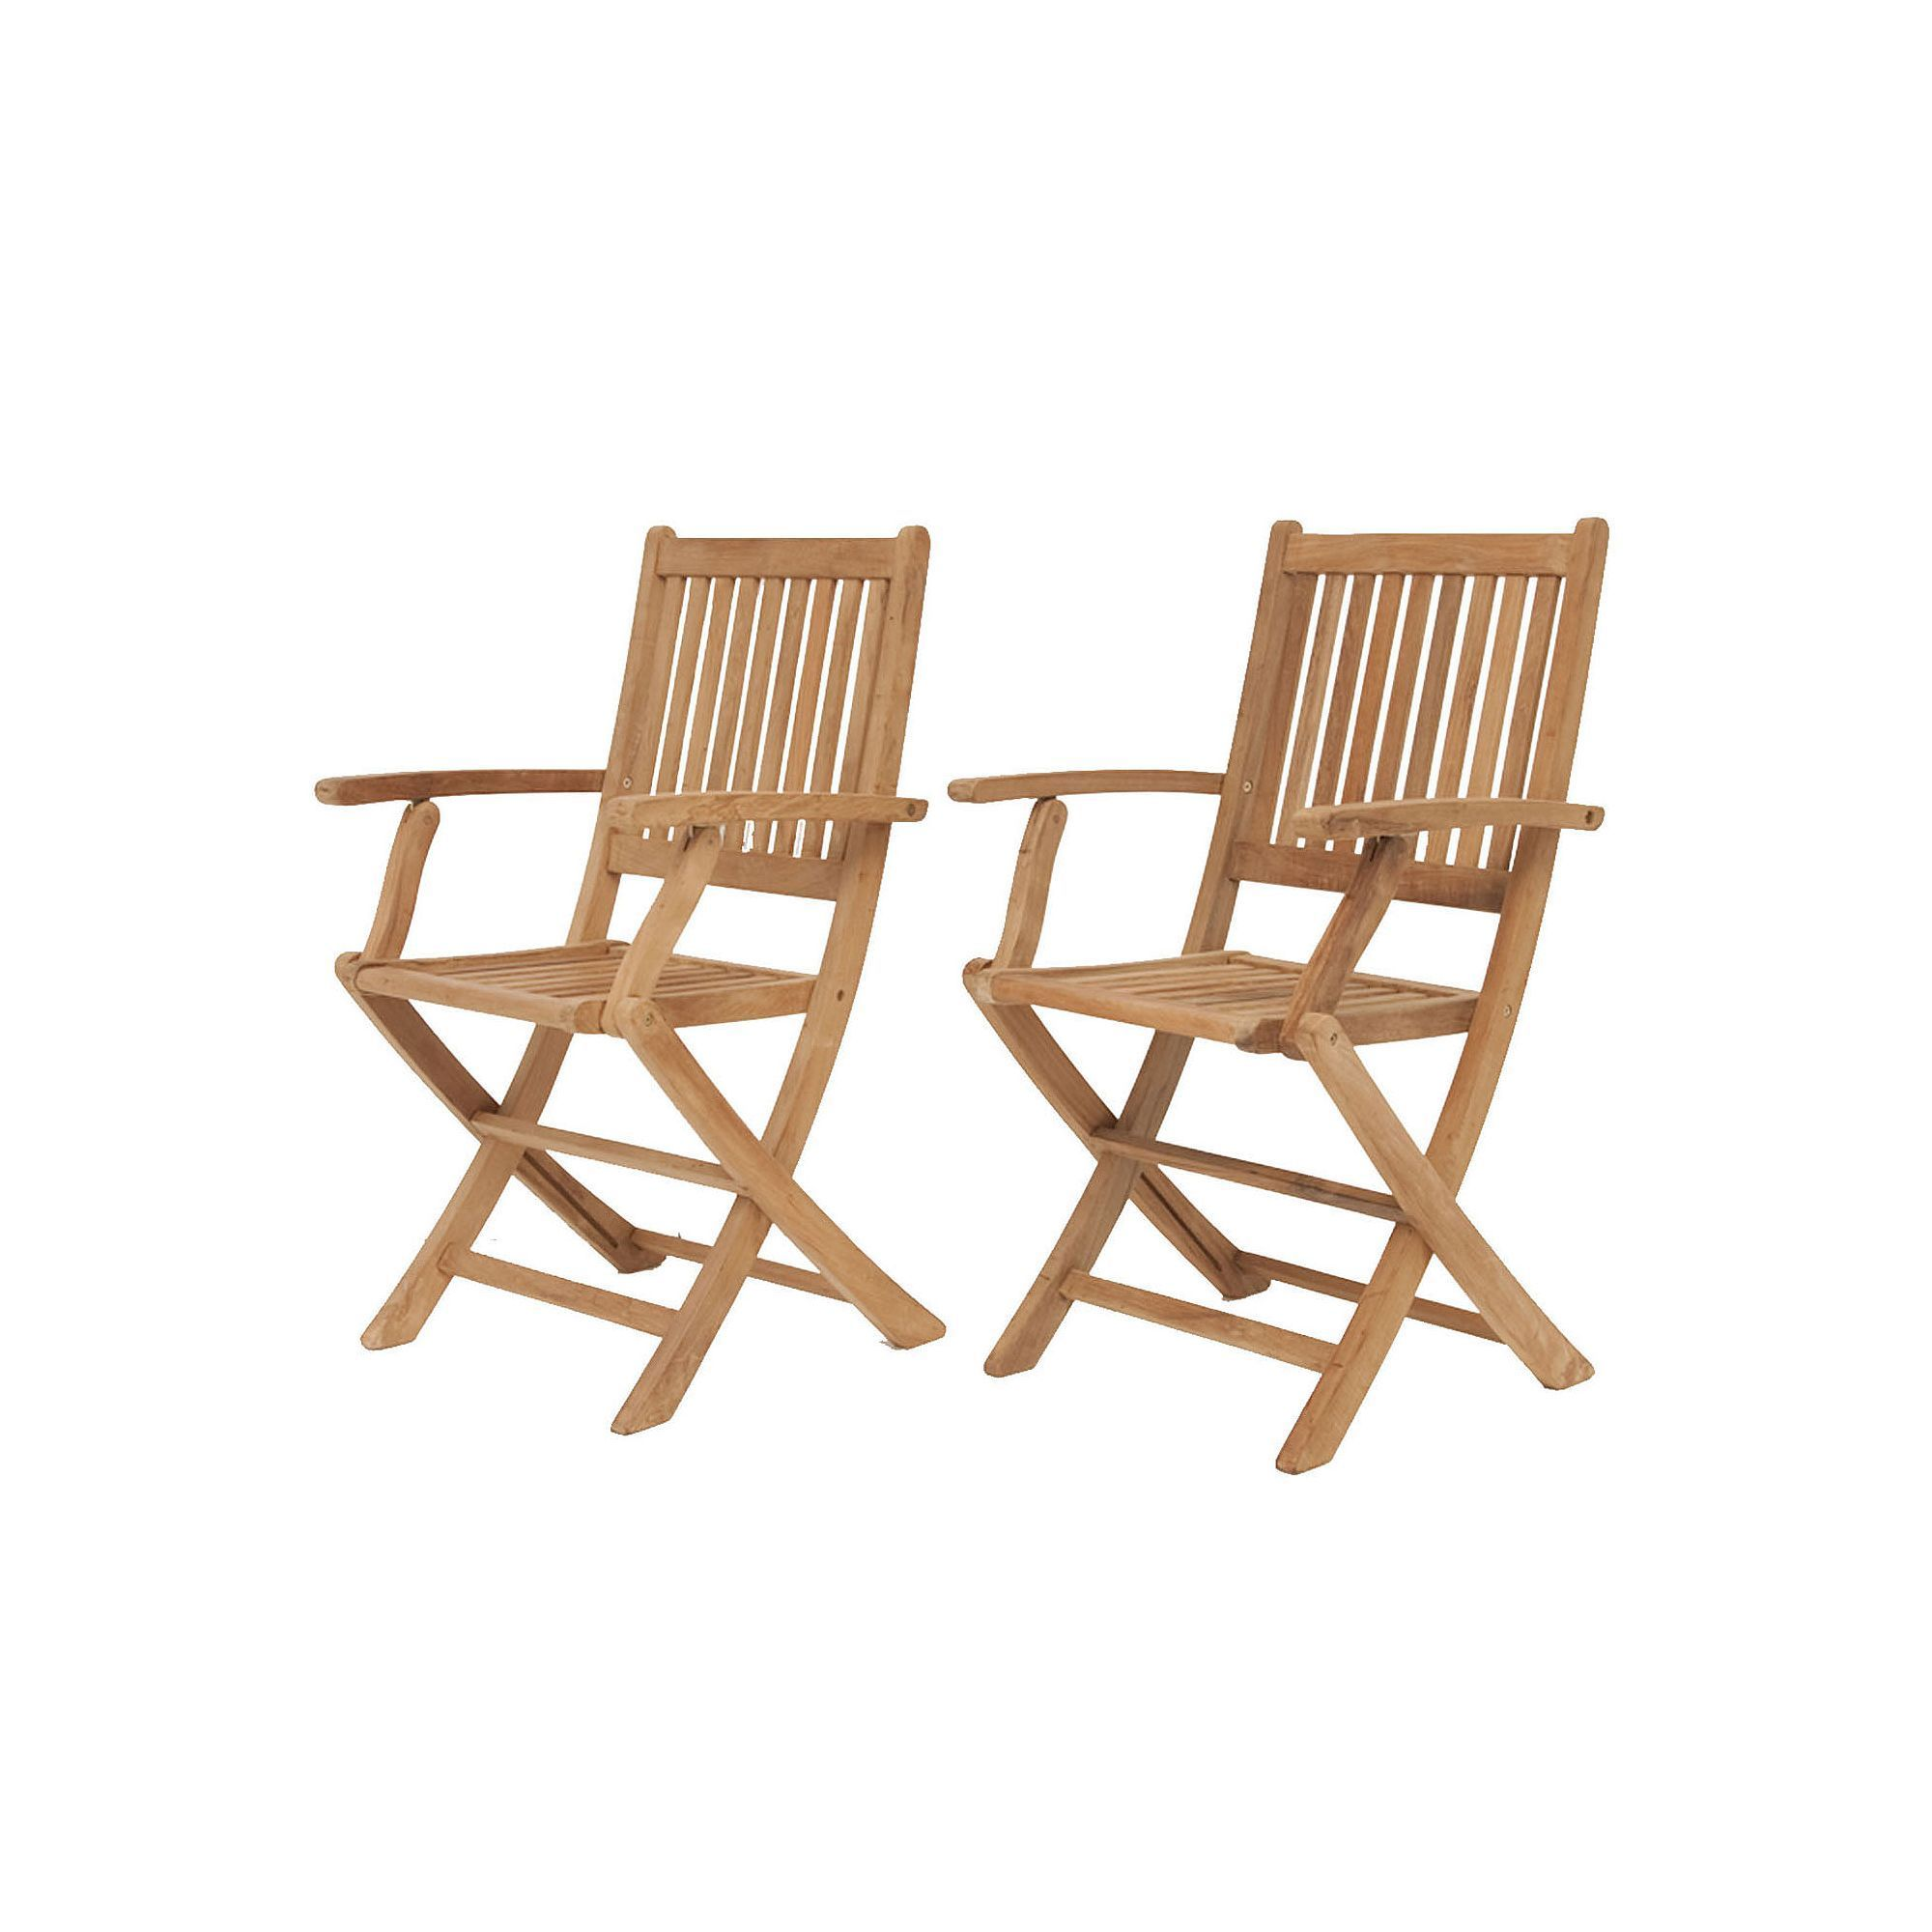 Amazonia Teak Yogya 2 pc Outdoor Folding Arm Chair Set Brown